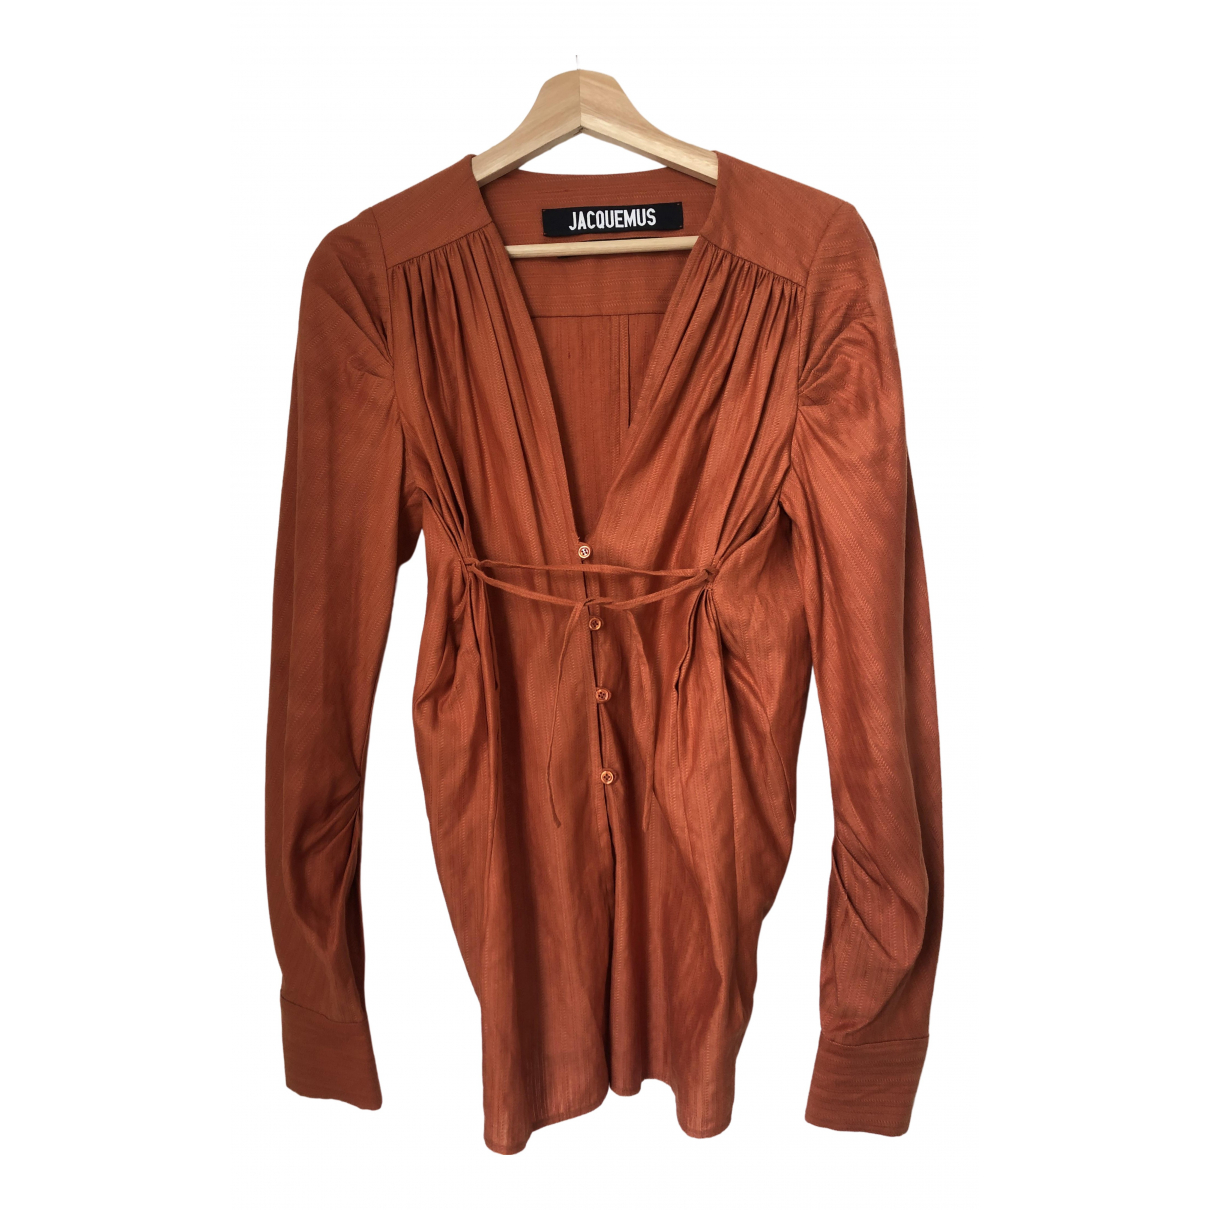 Jacquemus Le Souk Top in  Orange Leinen